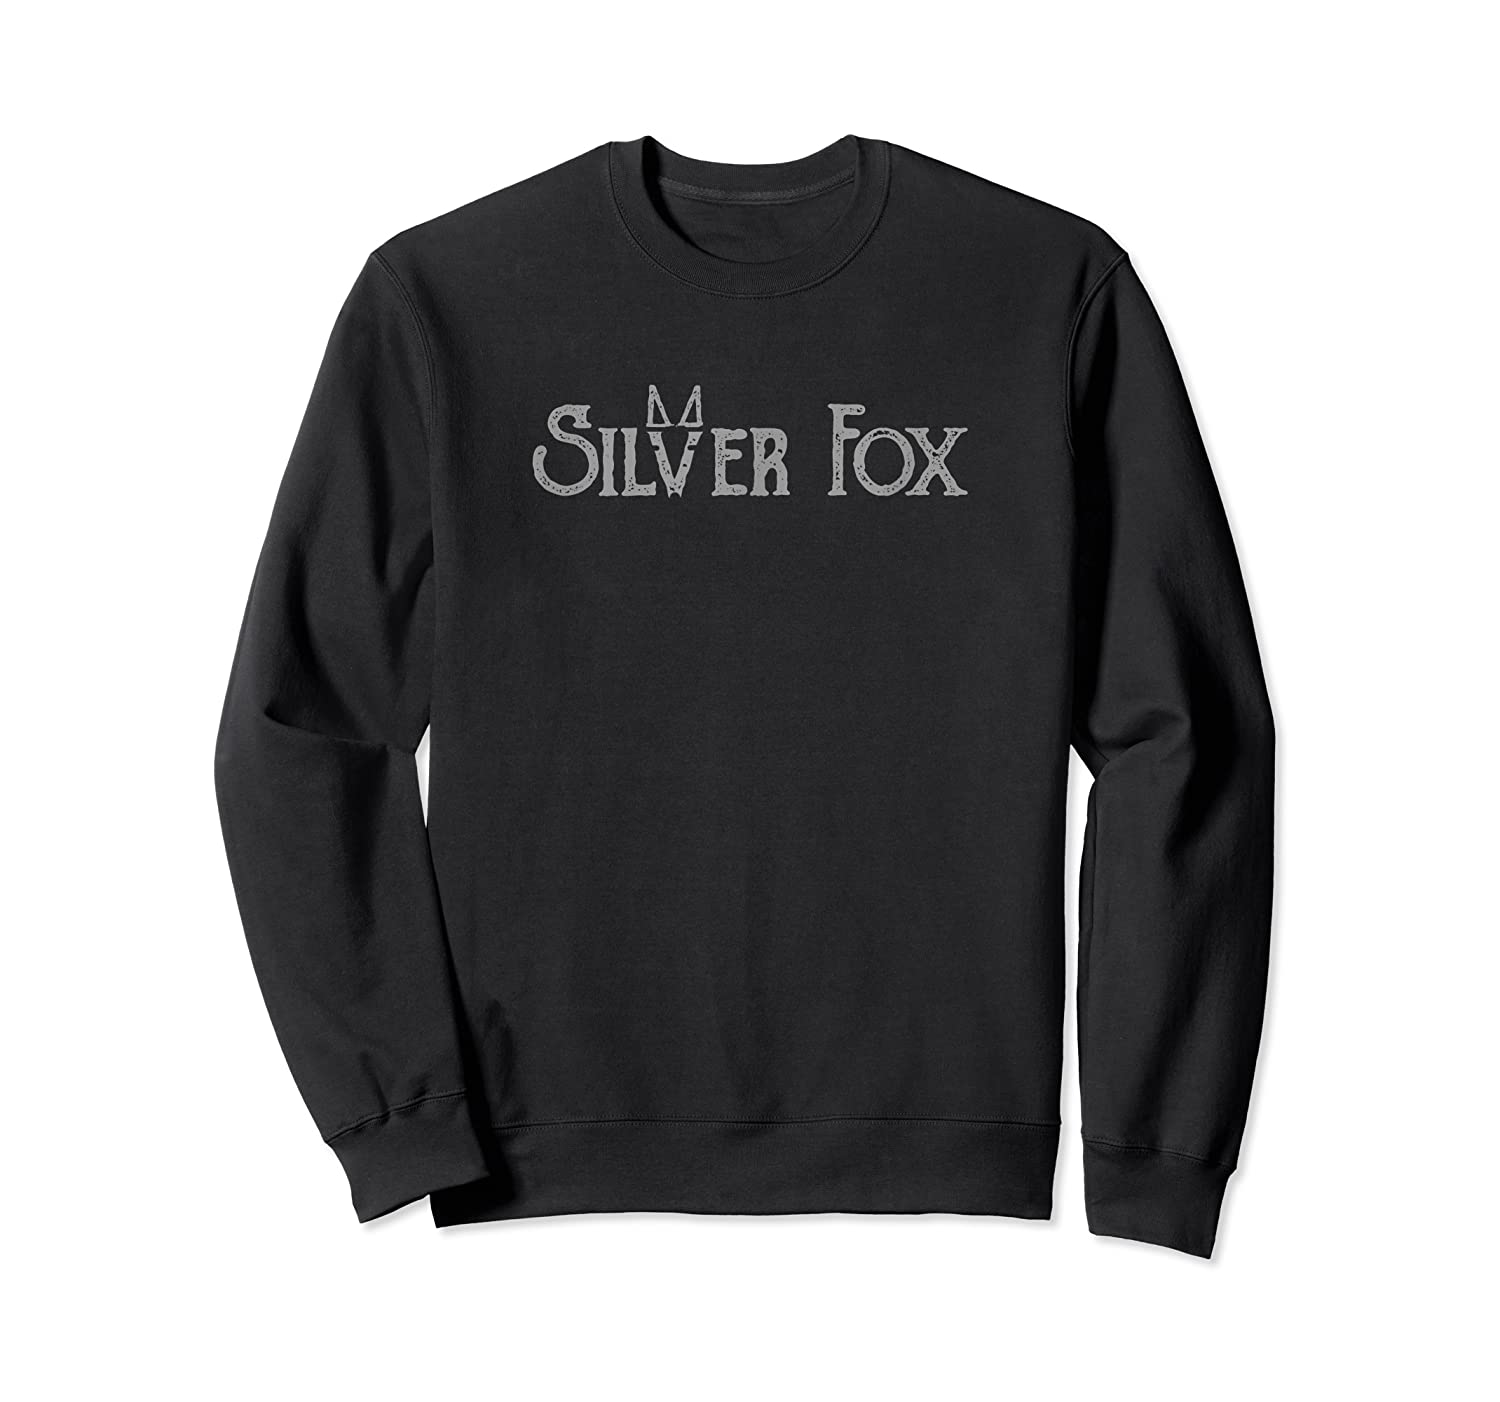 Silver Fox T Shirt For Sexy Silver Foxes, Baby Boomers Crewneck Sweater